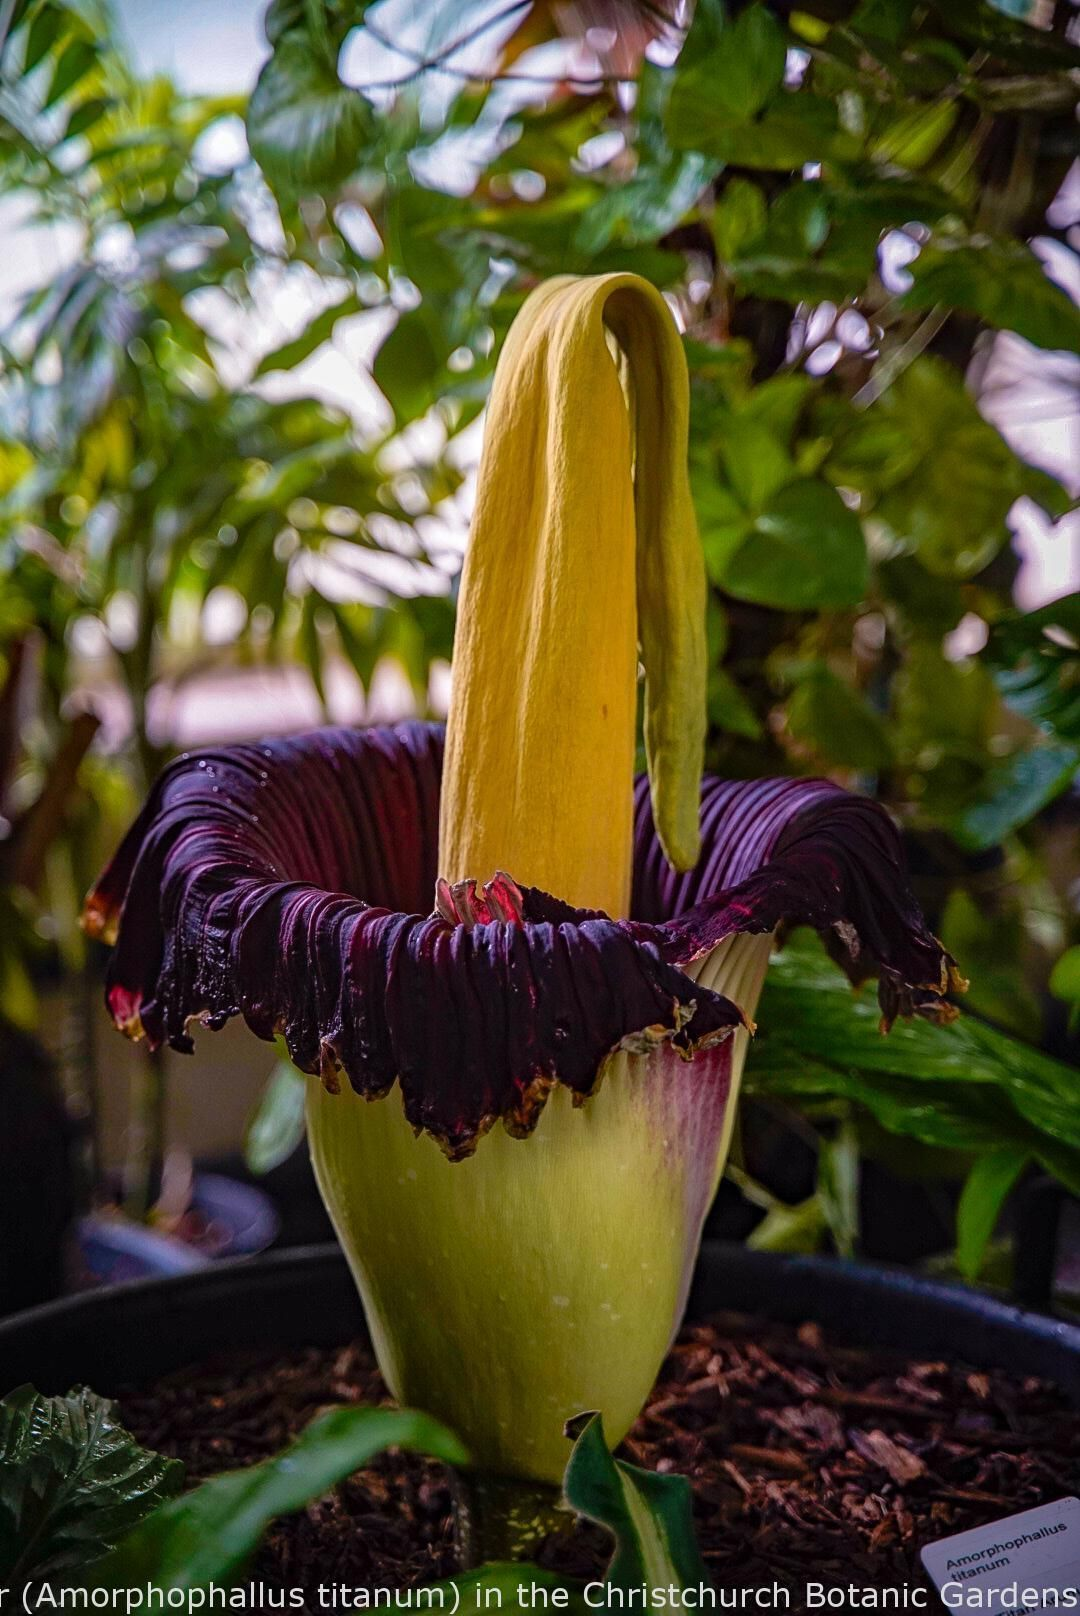 Gardening The Corpse Flower Amorphophallus Titanum In The Christchurch Botanic Gardens In 2020 Starting A Vegetable Garden Amorphophallus Titanum Corpse Flower